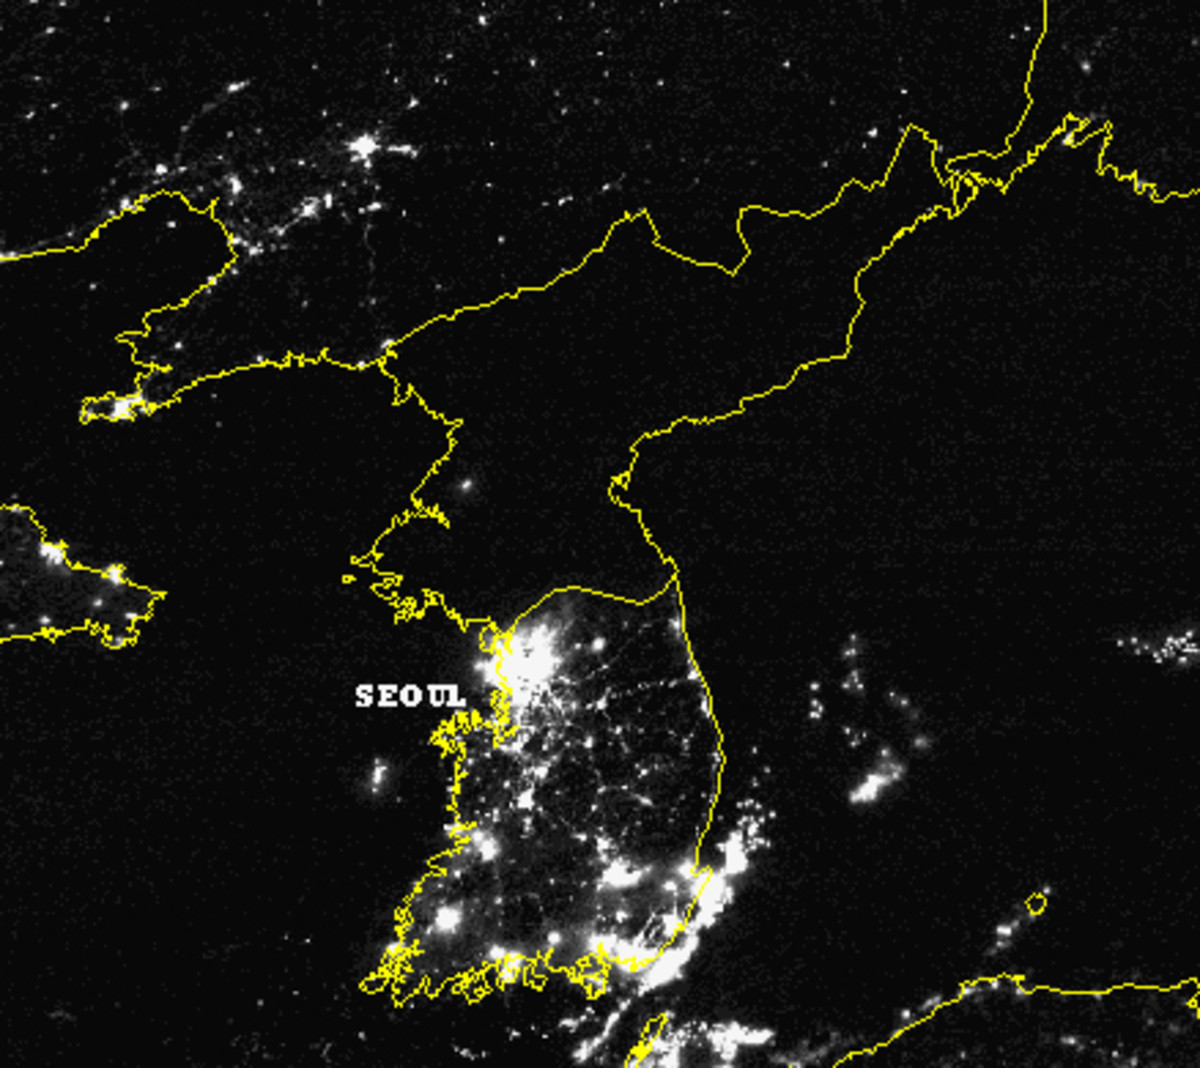 THE SOCIALISTS IN NORTH KOREA ALL USE THE SAME AMOUNT OF ELECTRICITY BUT THOSE IN CAPITALISTS SOUTH KOREA DISTRIBUTE ELECTRICITY UNEQUALLY